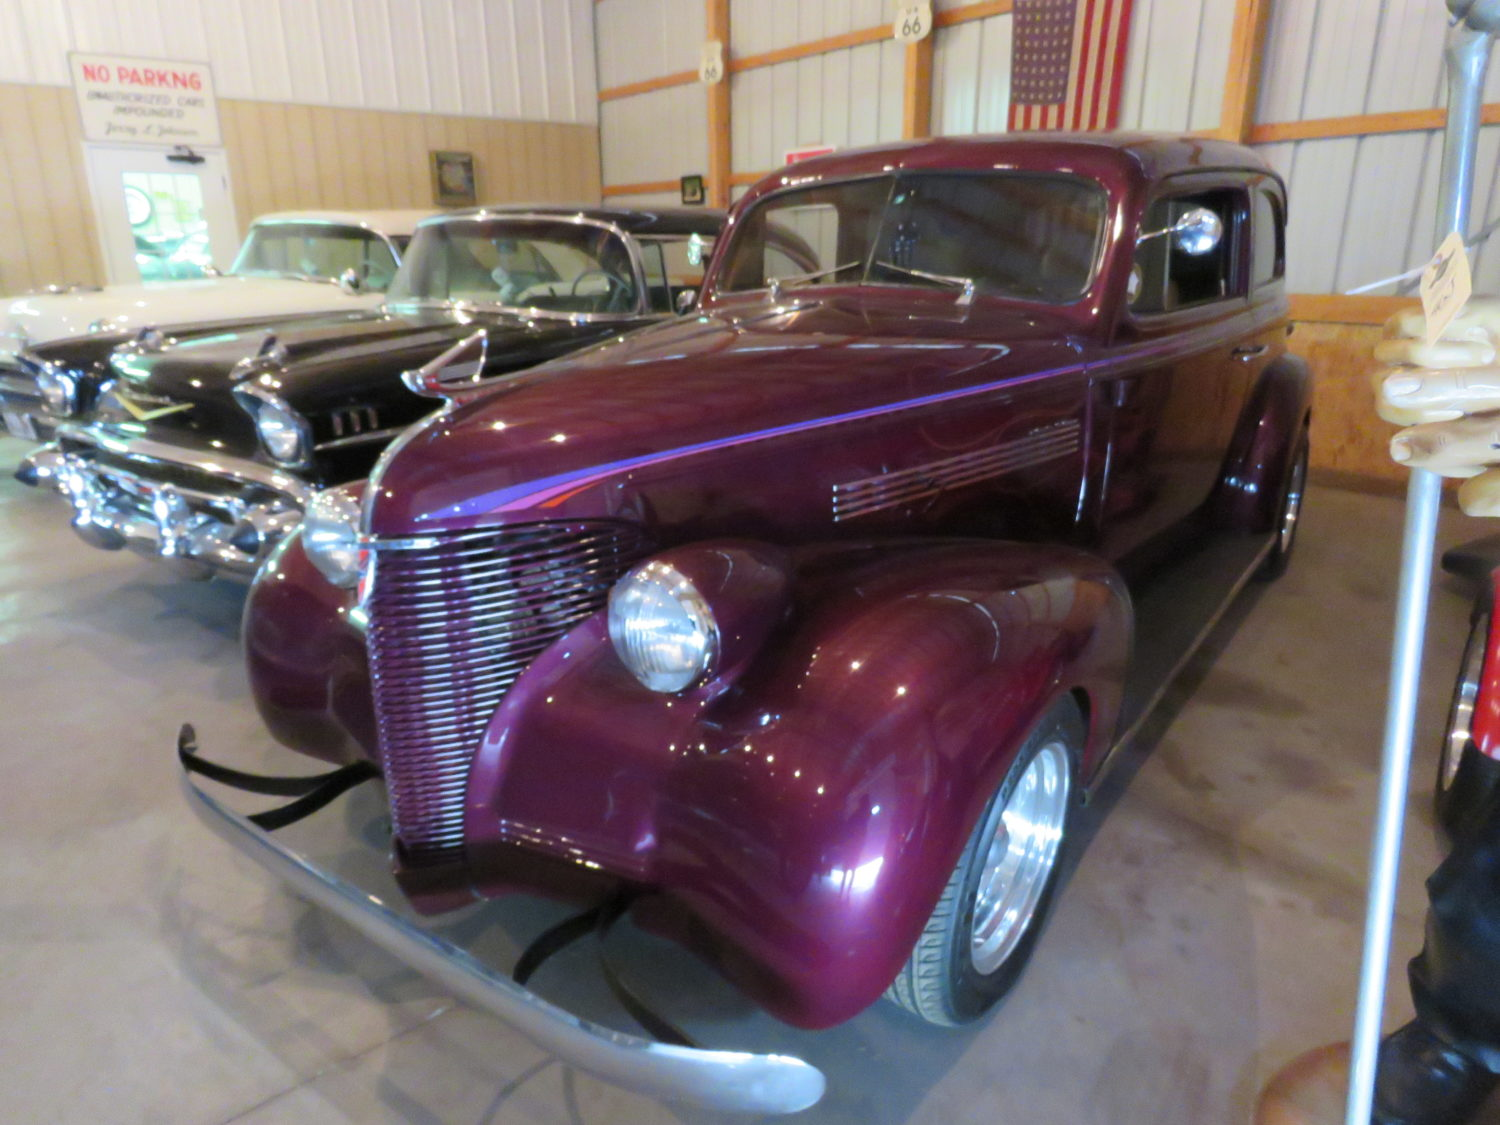 FABULOUS COLLECTOR CARS, MEMORABILIA, & MORE AT AUCTION-JERRY JOHNSON ESTATE! - image 6